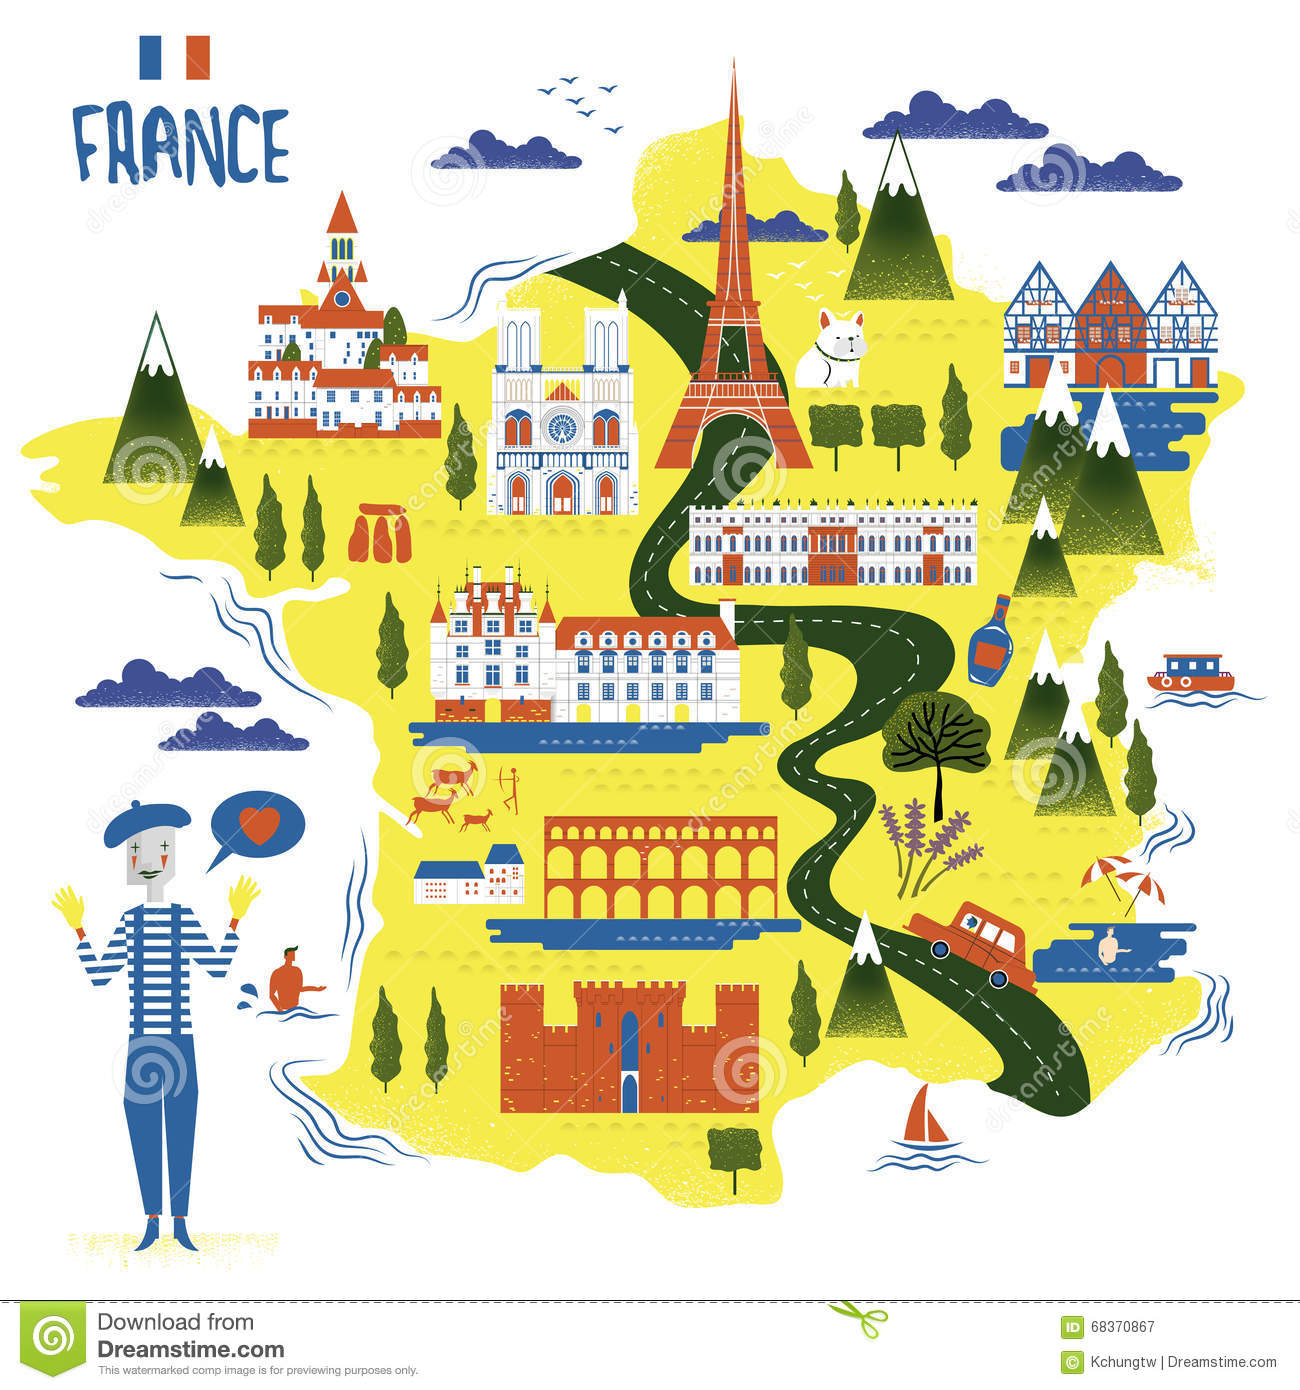 France Travel Map Vector Image 68370867 – France Tourist Attractions Map